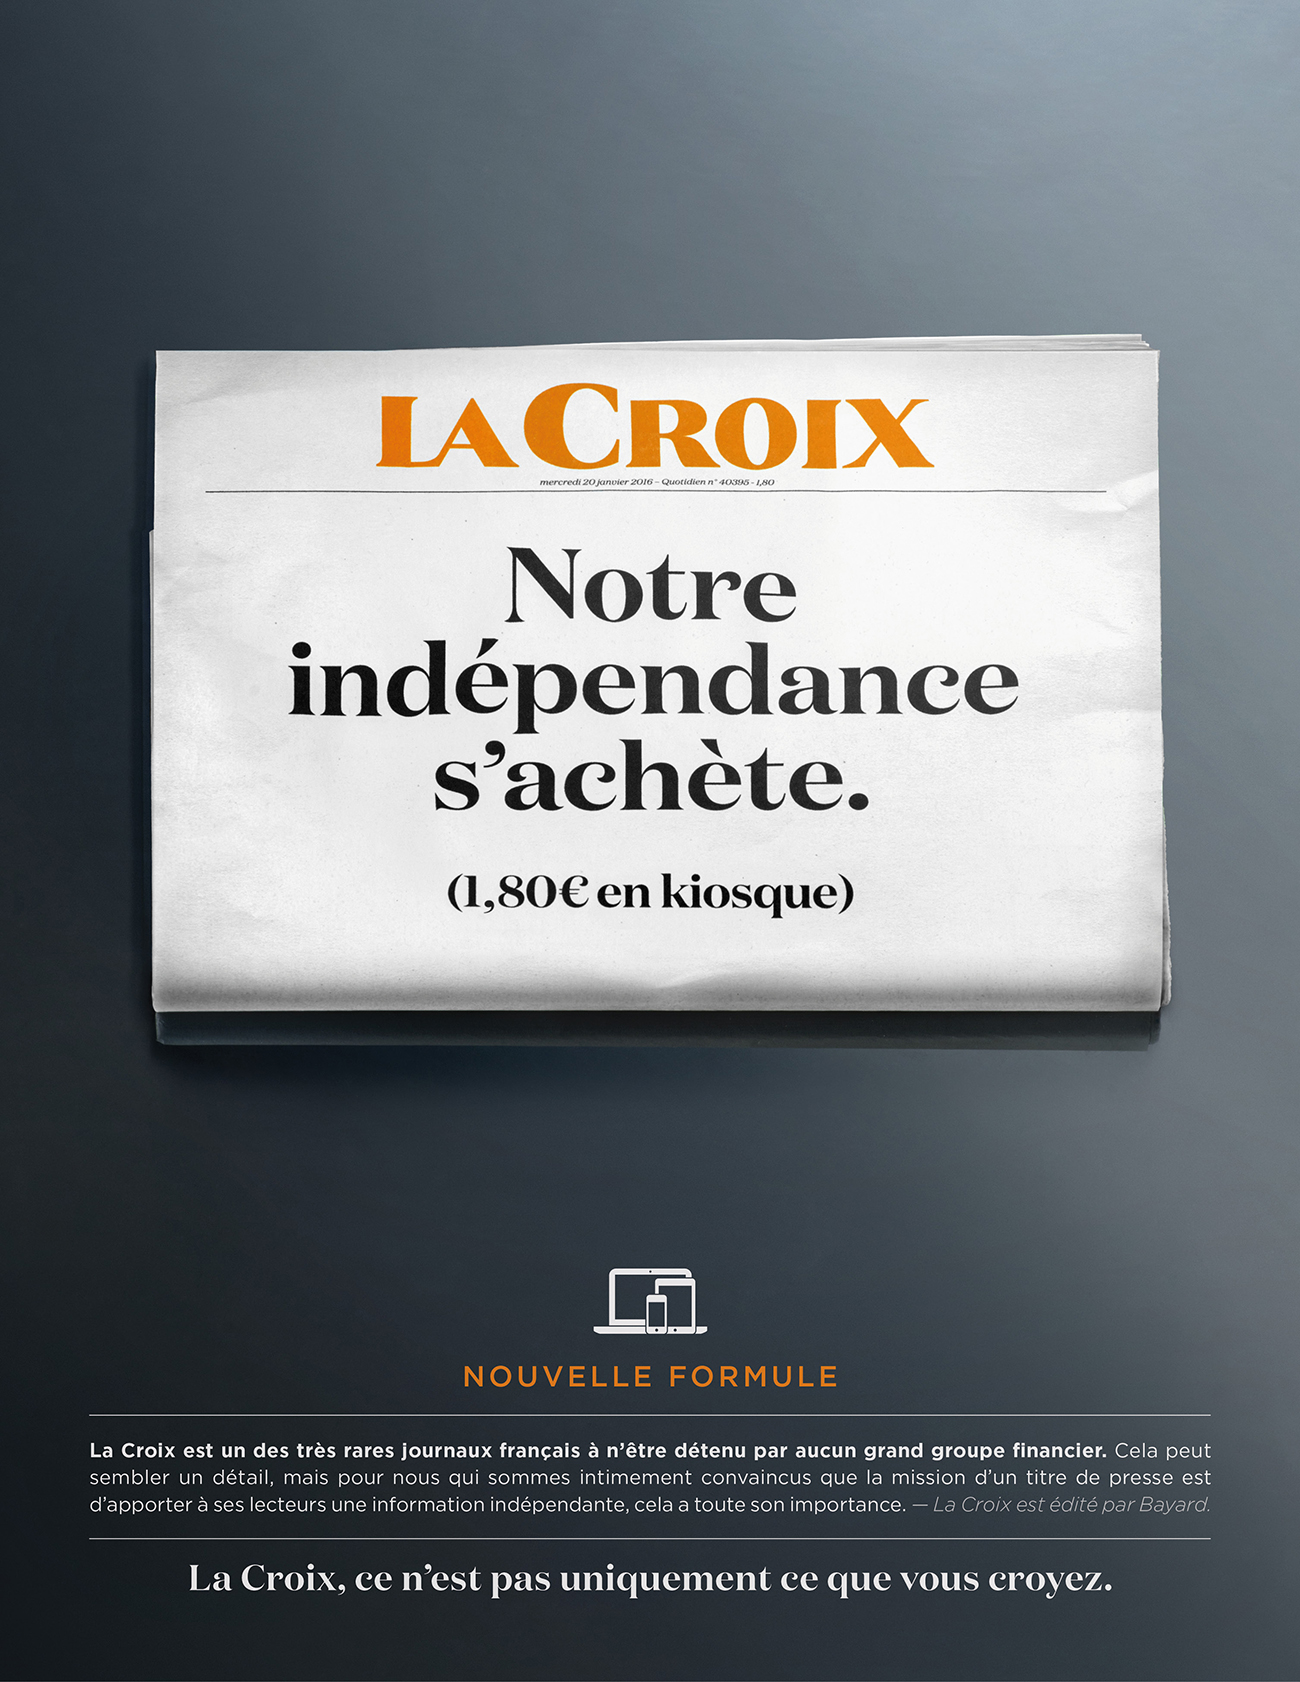 journal-la-croix-nouvelle-formule-2016-religion-football-economie-churchill-lionel-messie-agence-betc-4